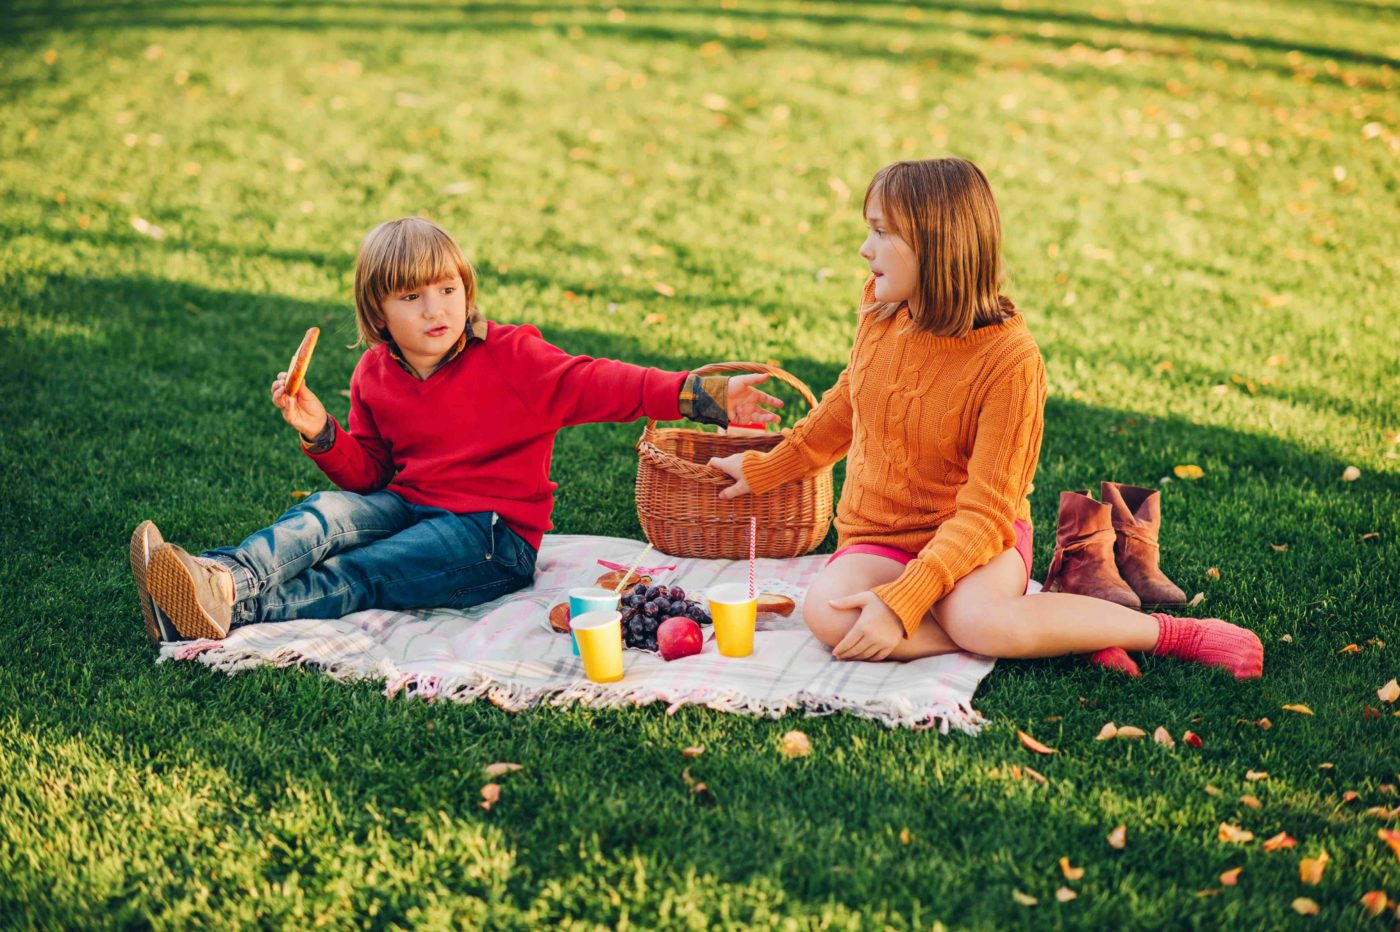 LightWorkers 10 Completely Free Things to Do with the Kids.